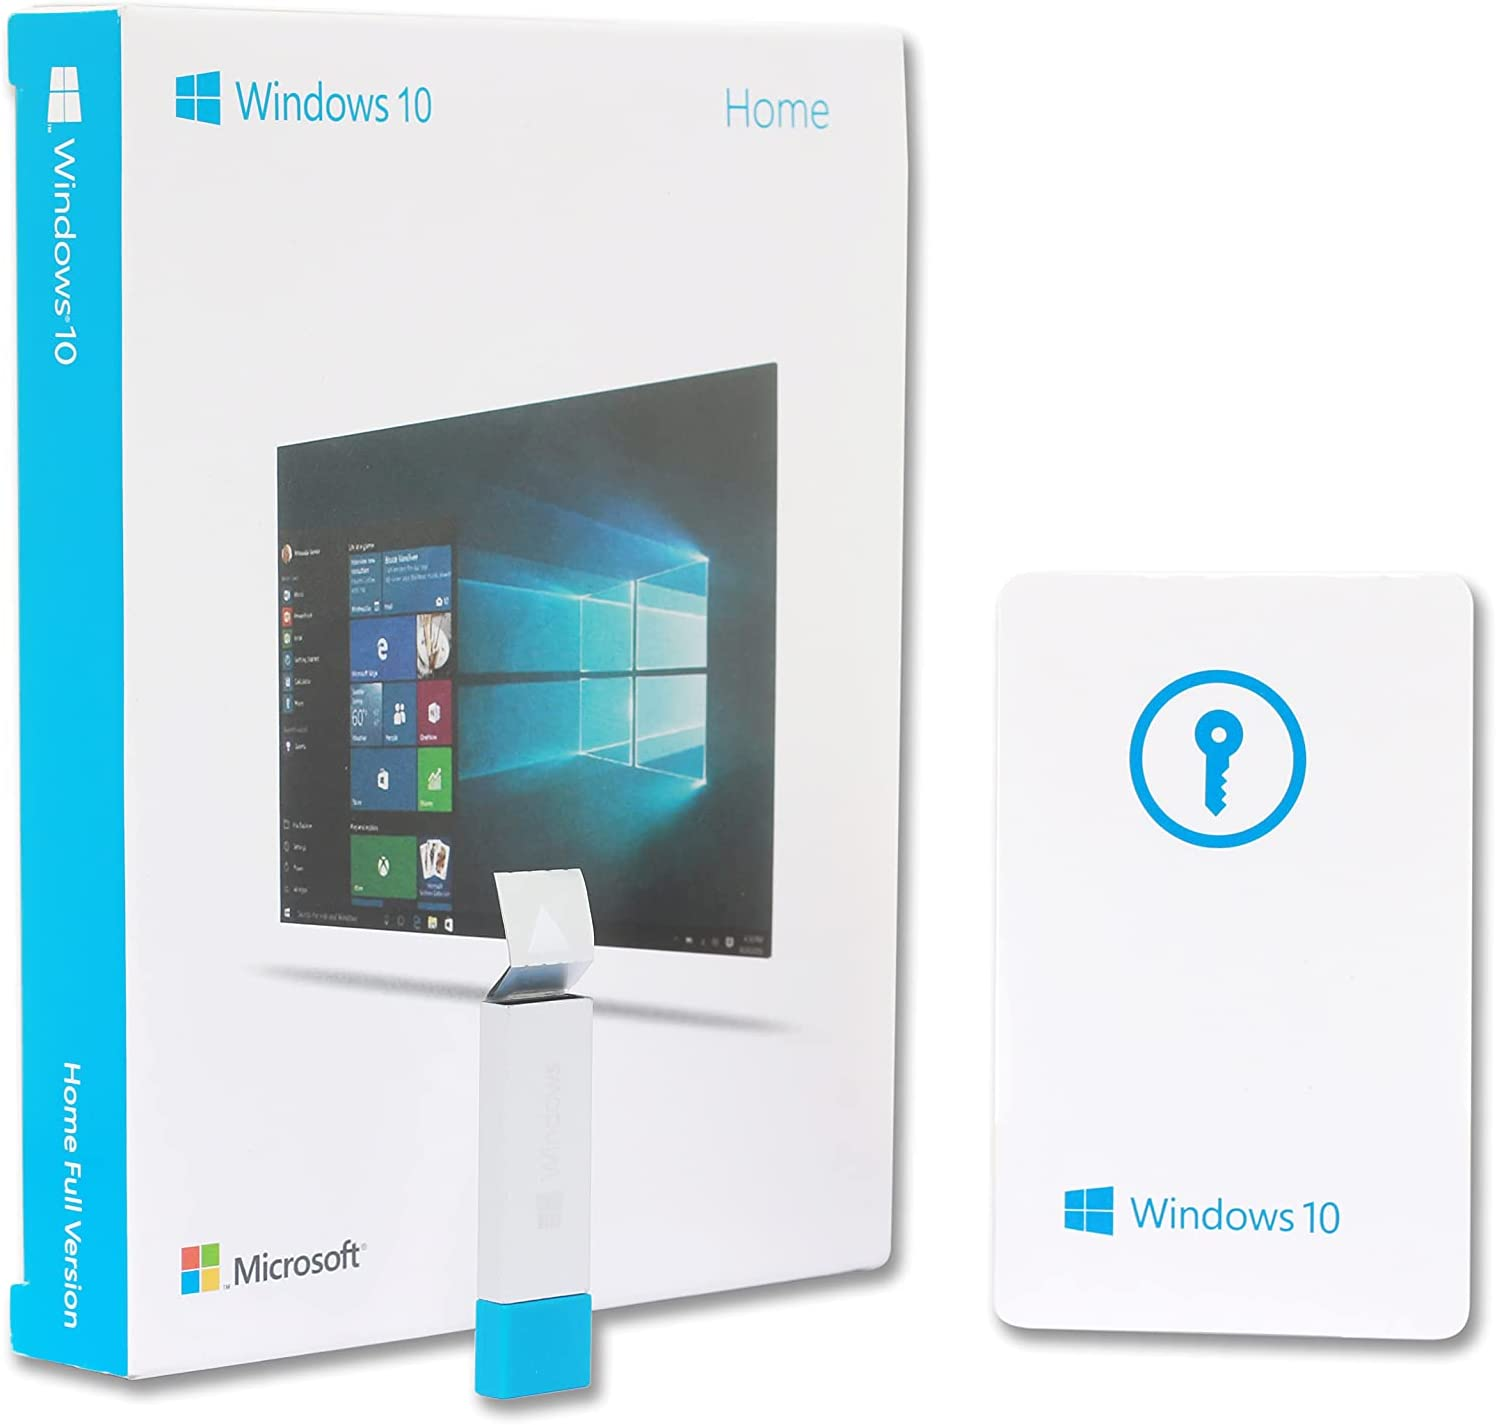 Windоw 10 HOME EDITION - 64 bit - with USB | the best quality product | for 1 PC only | OEM